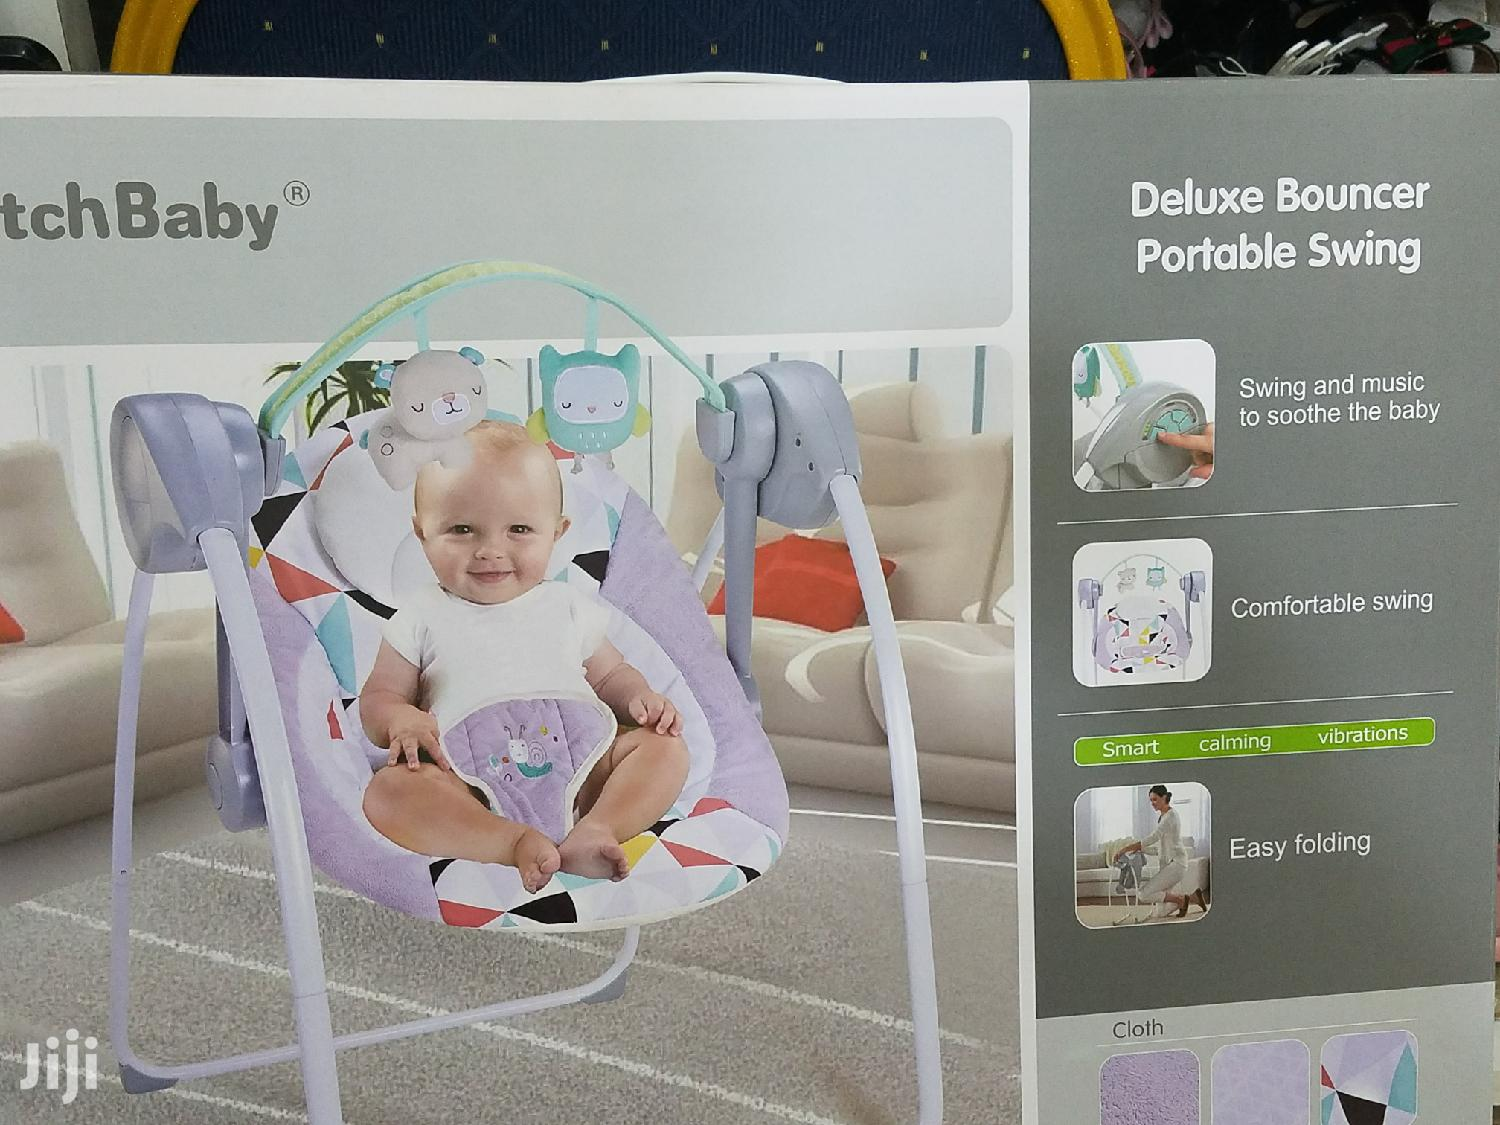 Deluxe Bouncer and Portable Swing for Baby's